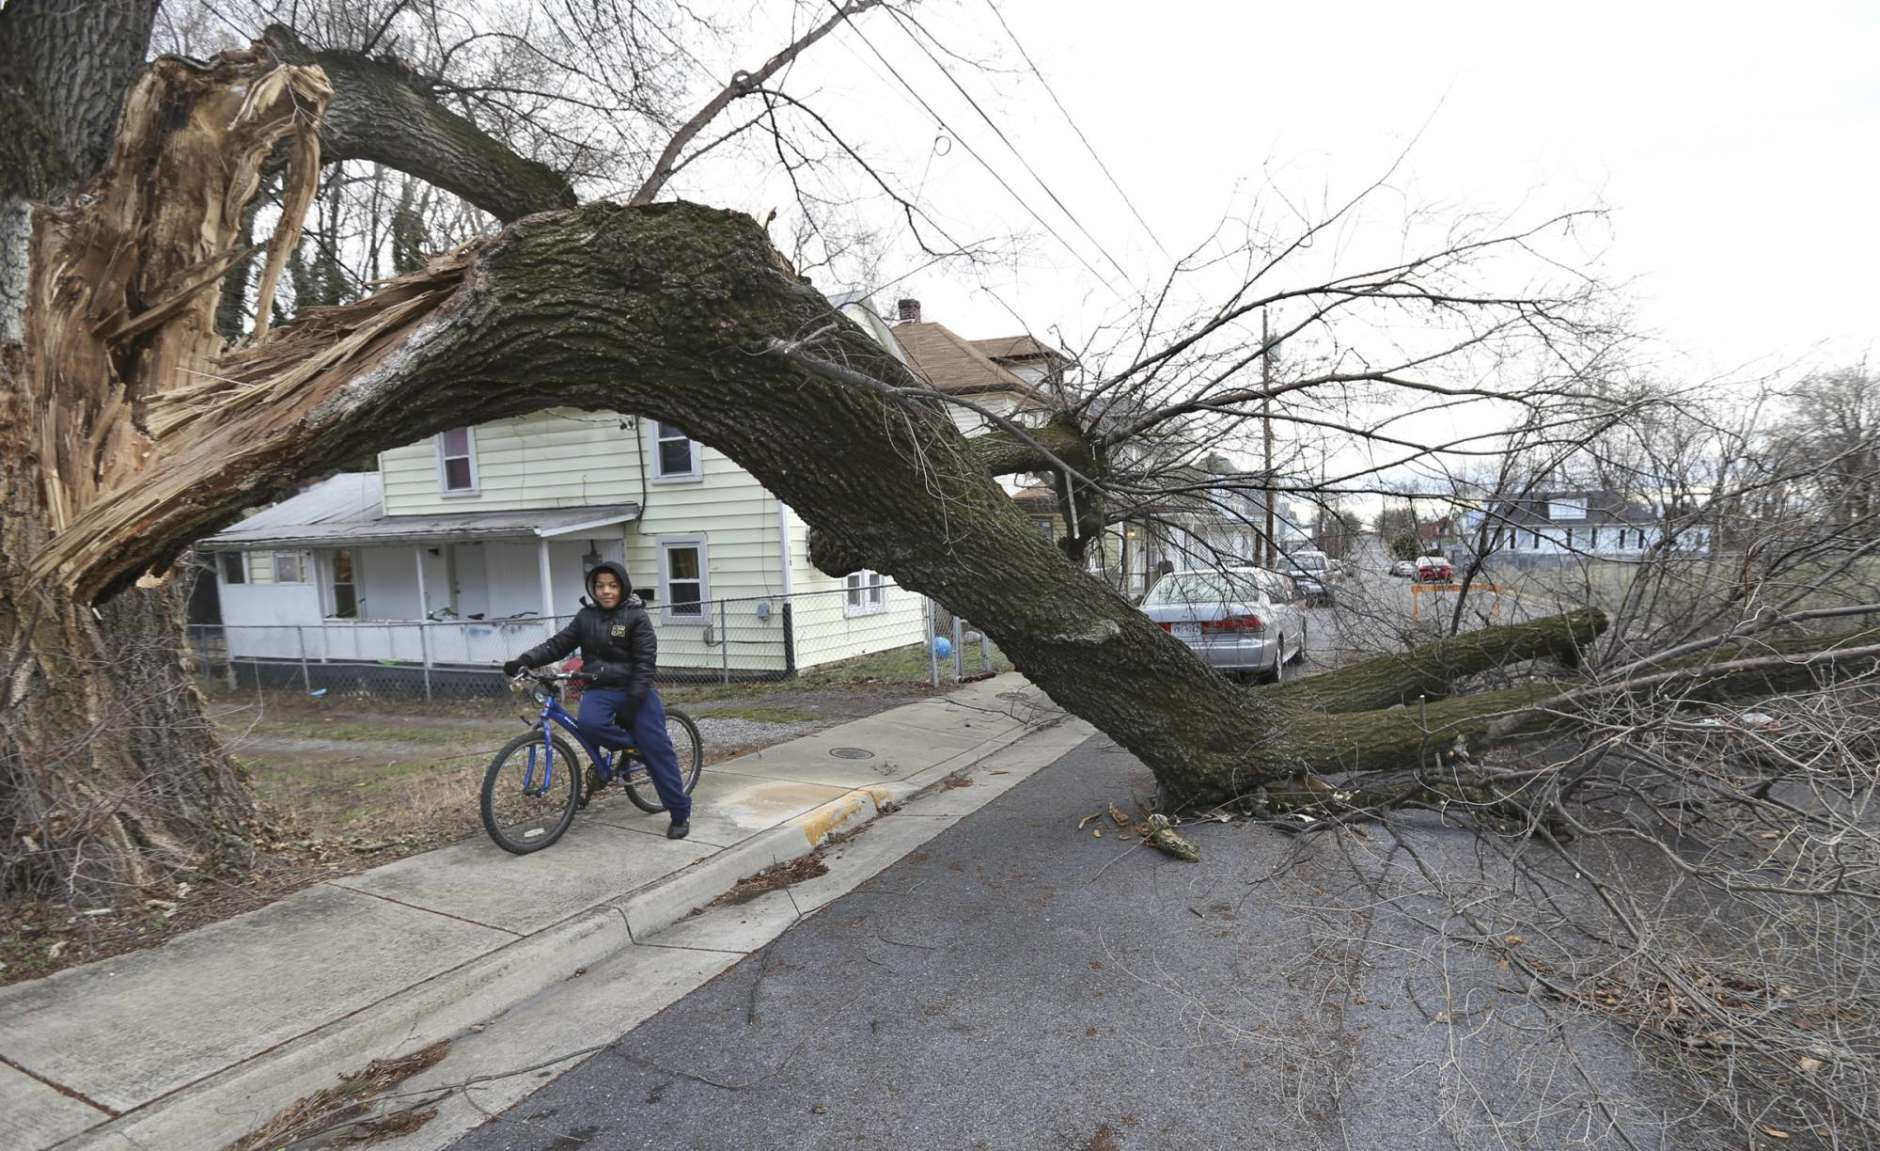 Tristan Boughton checks out a large limb that fell off a tree and blocked a street in his Winchester, Va. neighborhood on Friday March 2, 2018.  The wind storm caused downed trees and powerlines and closed area schools.   (Ginger Perry/The Winchester Star via AP)